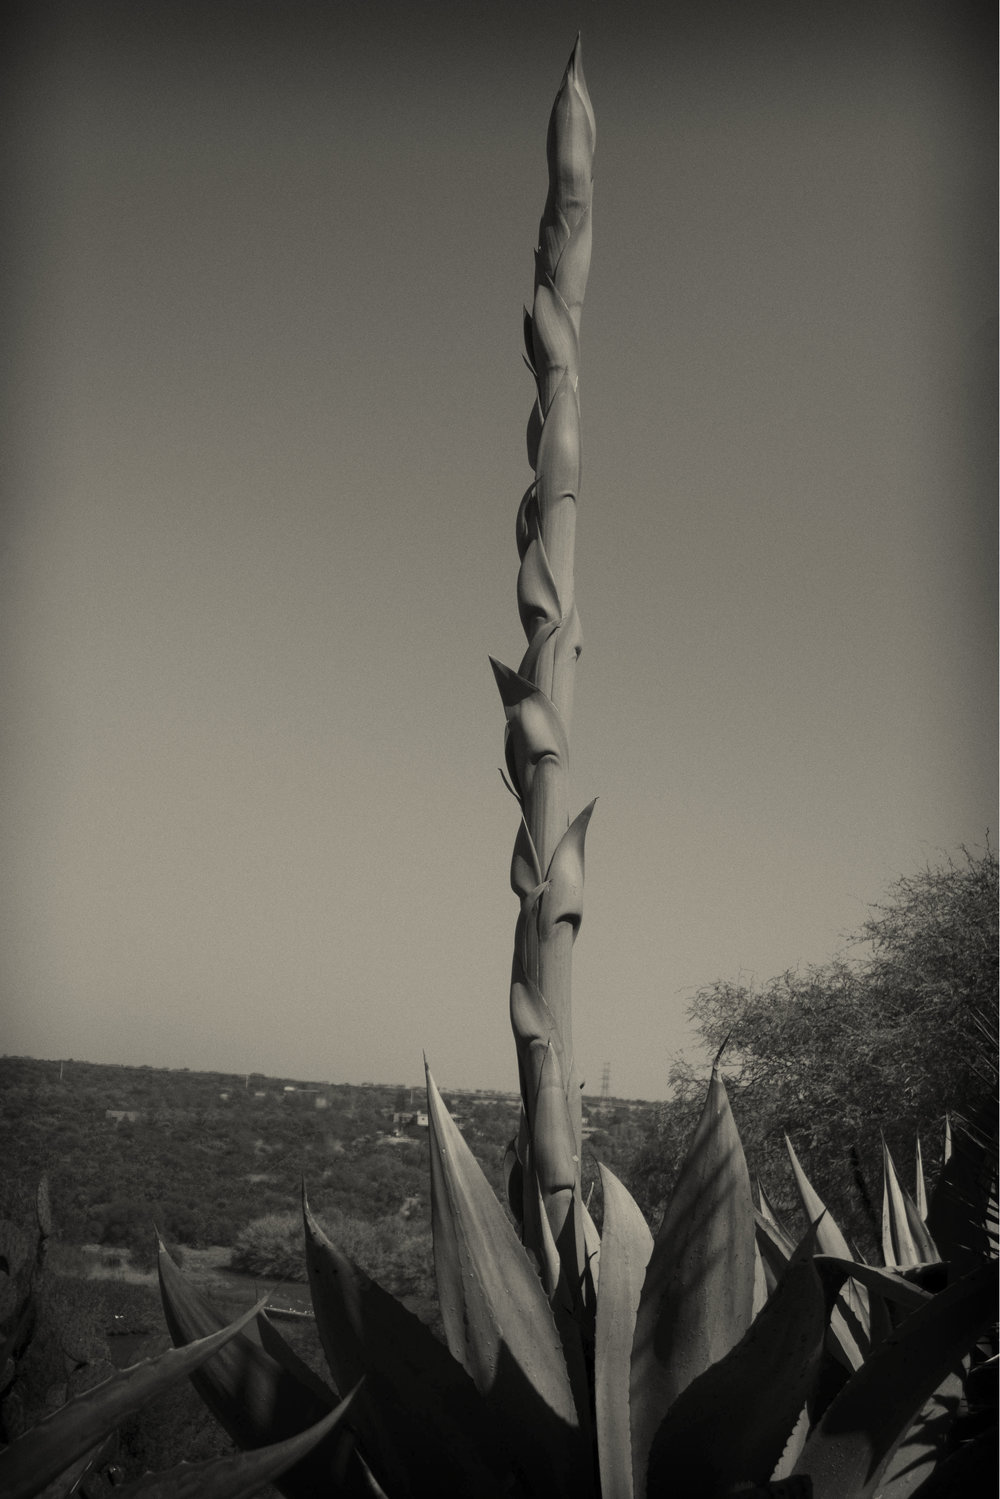 The giant mast of agave, El Charco del Ingenio, San Miguel de ALlende